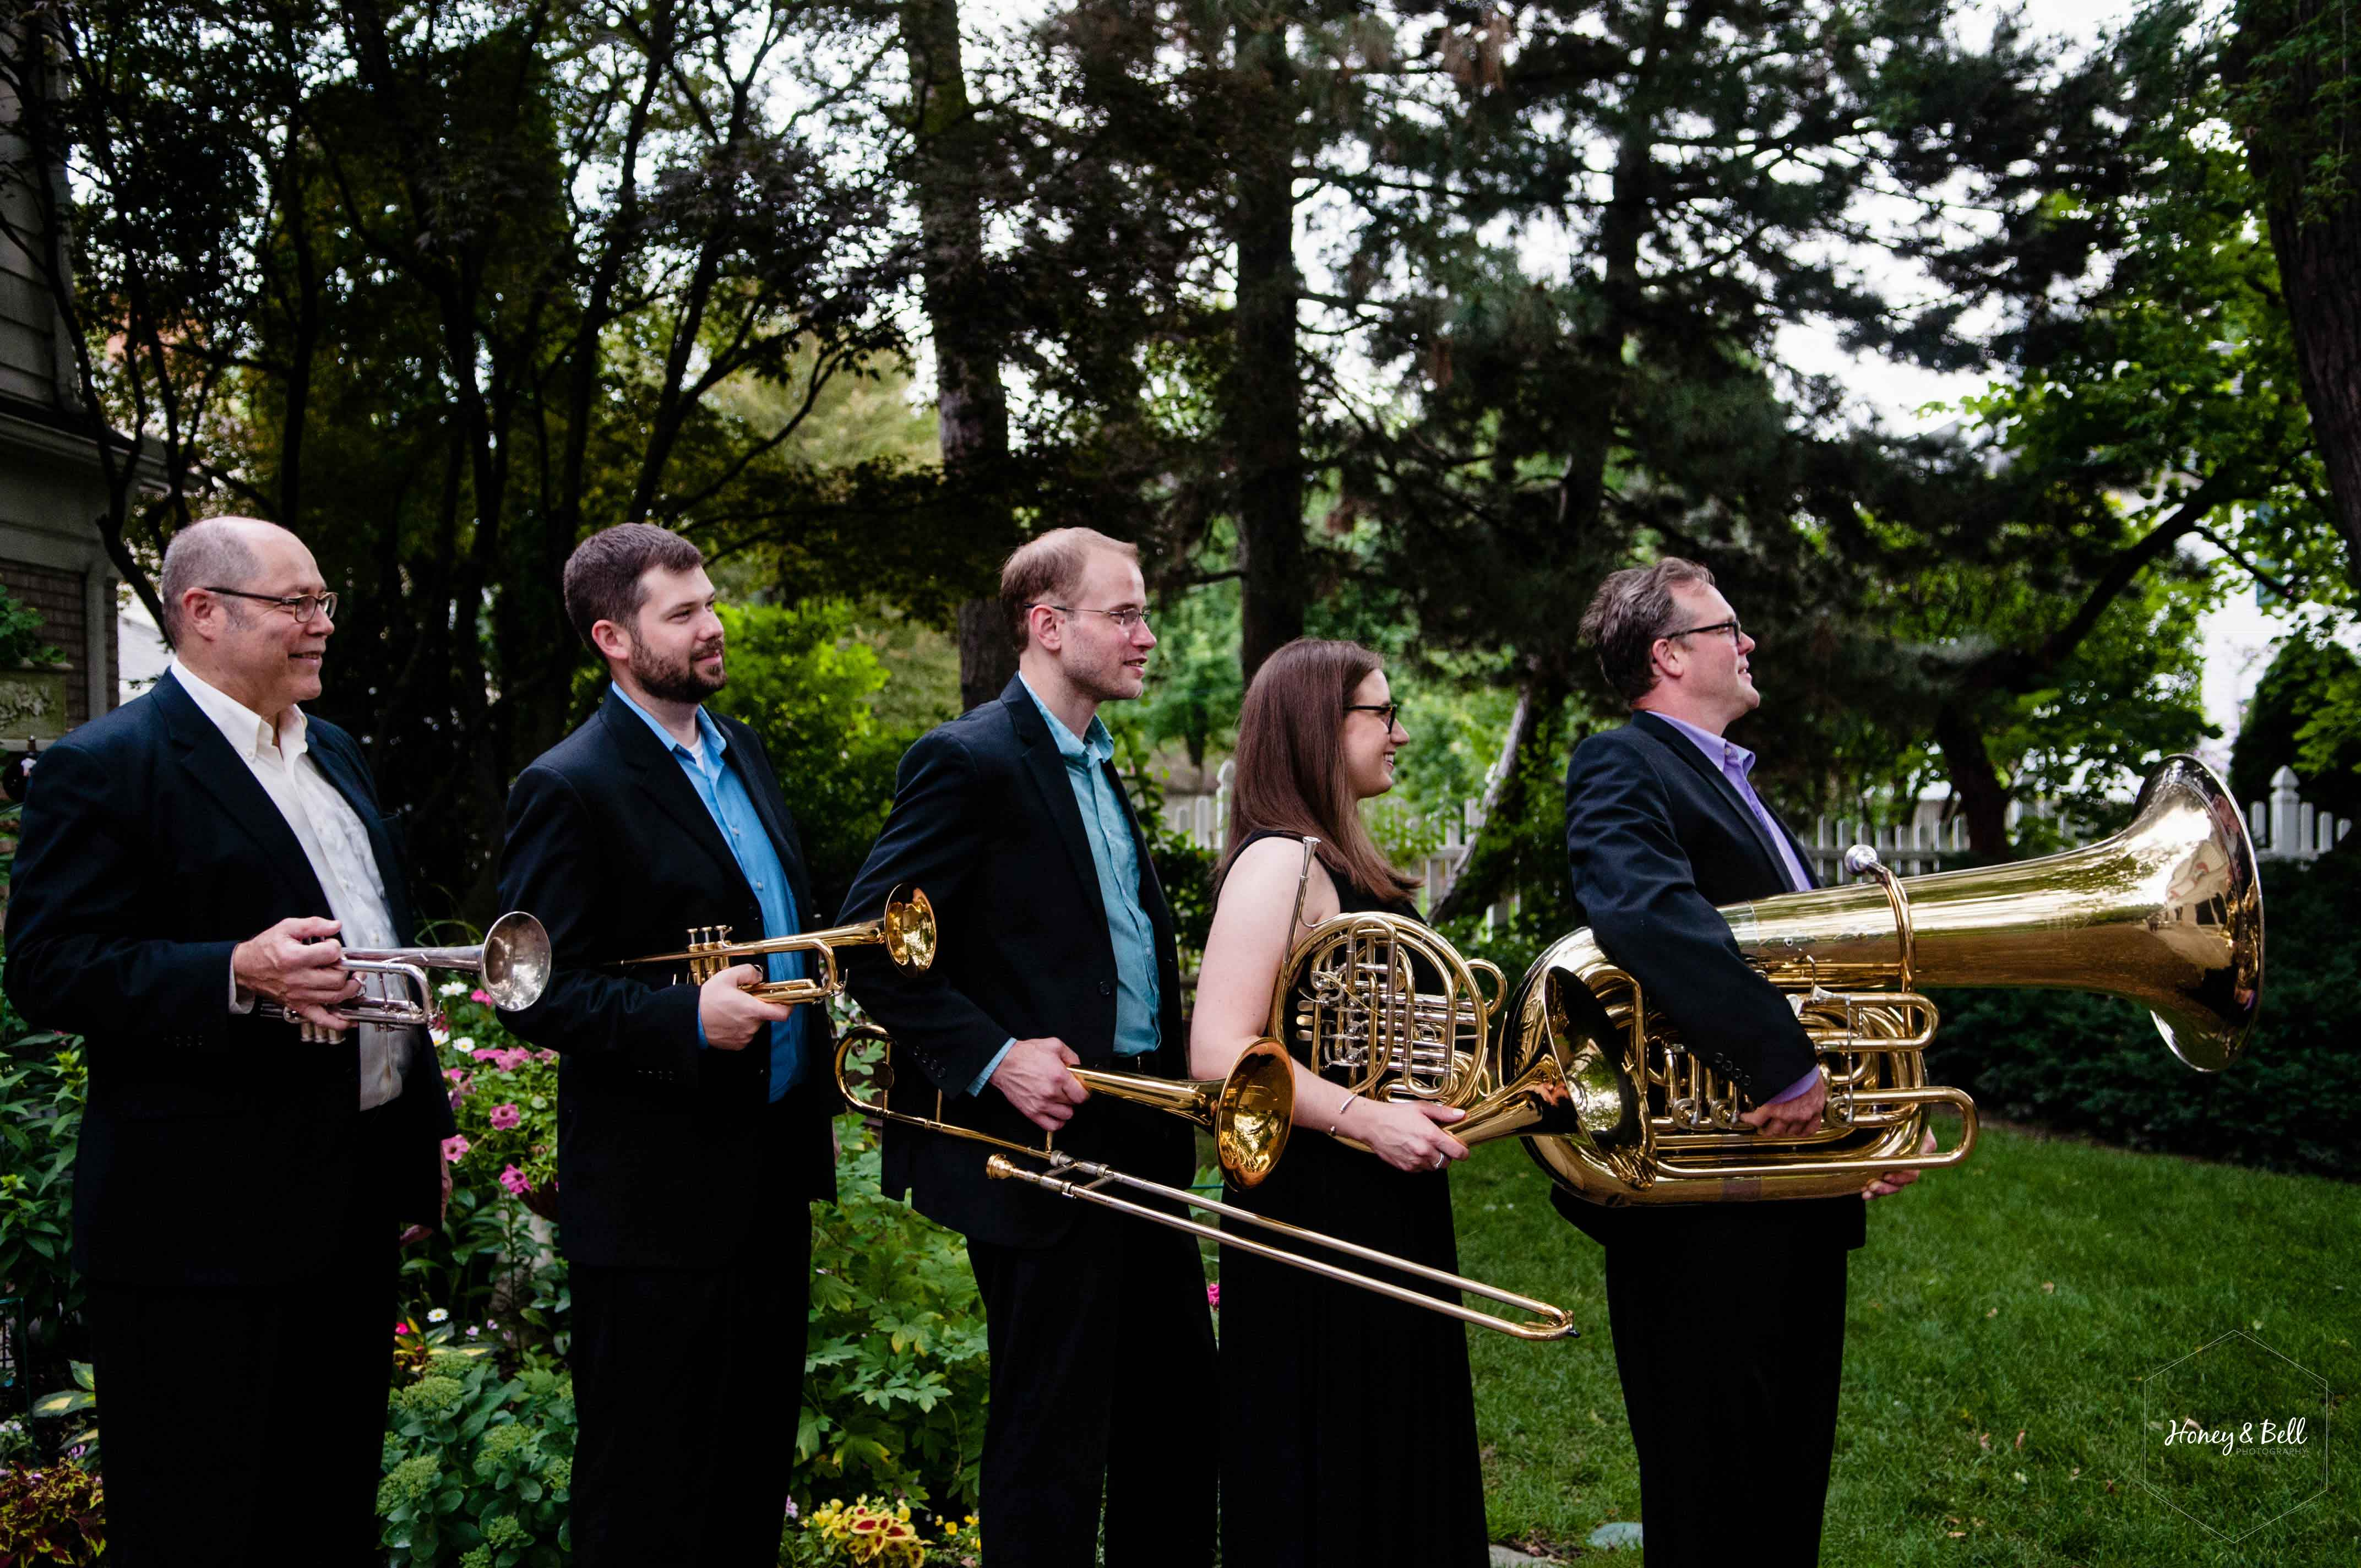 north-of-canada-brass-quintet-detroit-michigan-grosse-pointe-band-photographer-23